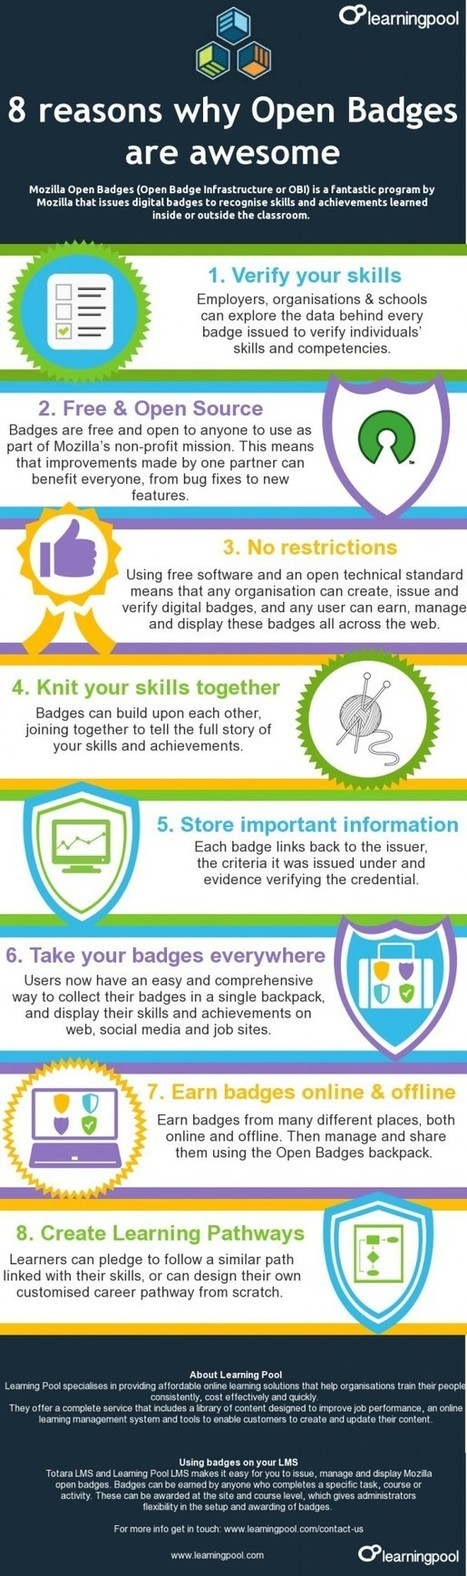 8 Reasons Why Open Badges Are Awesome Infographic | Higher Education and Technology | Scoop.it